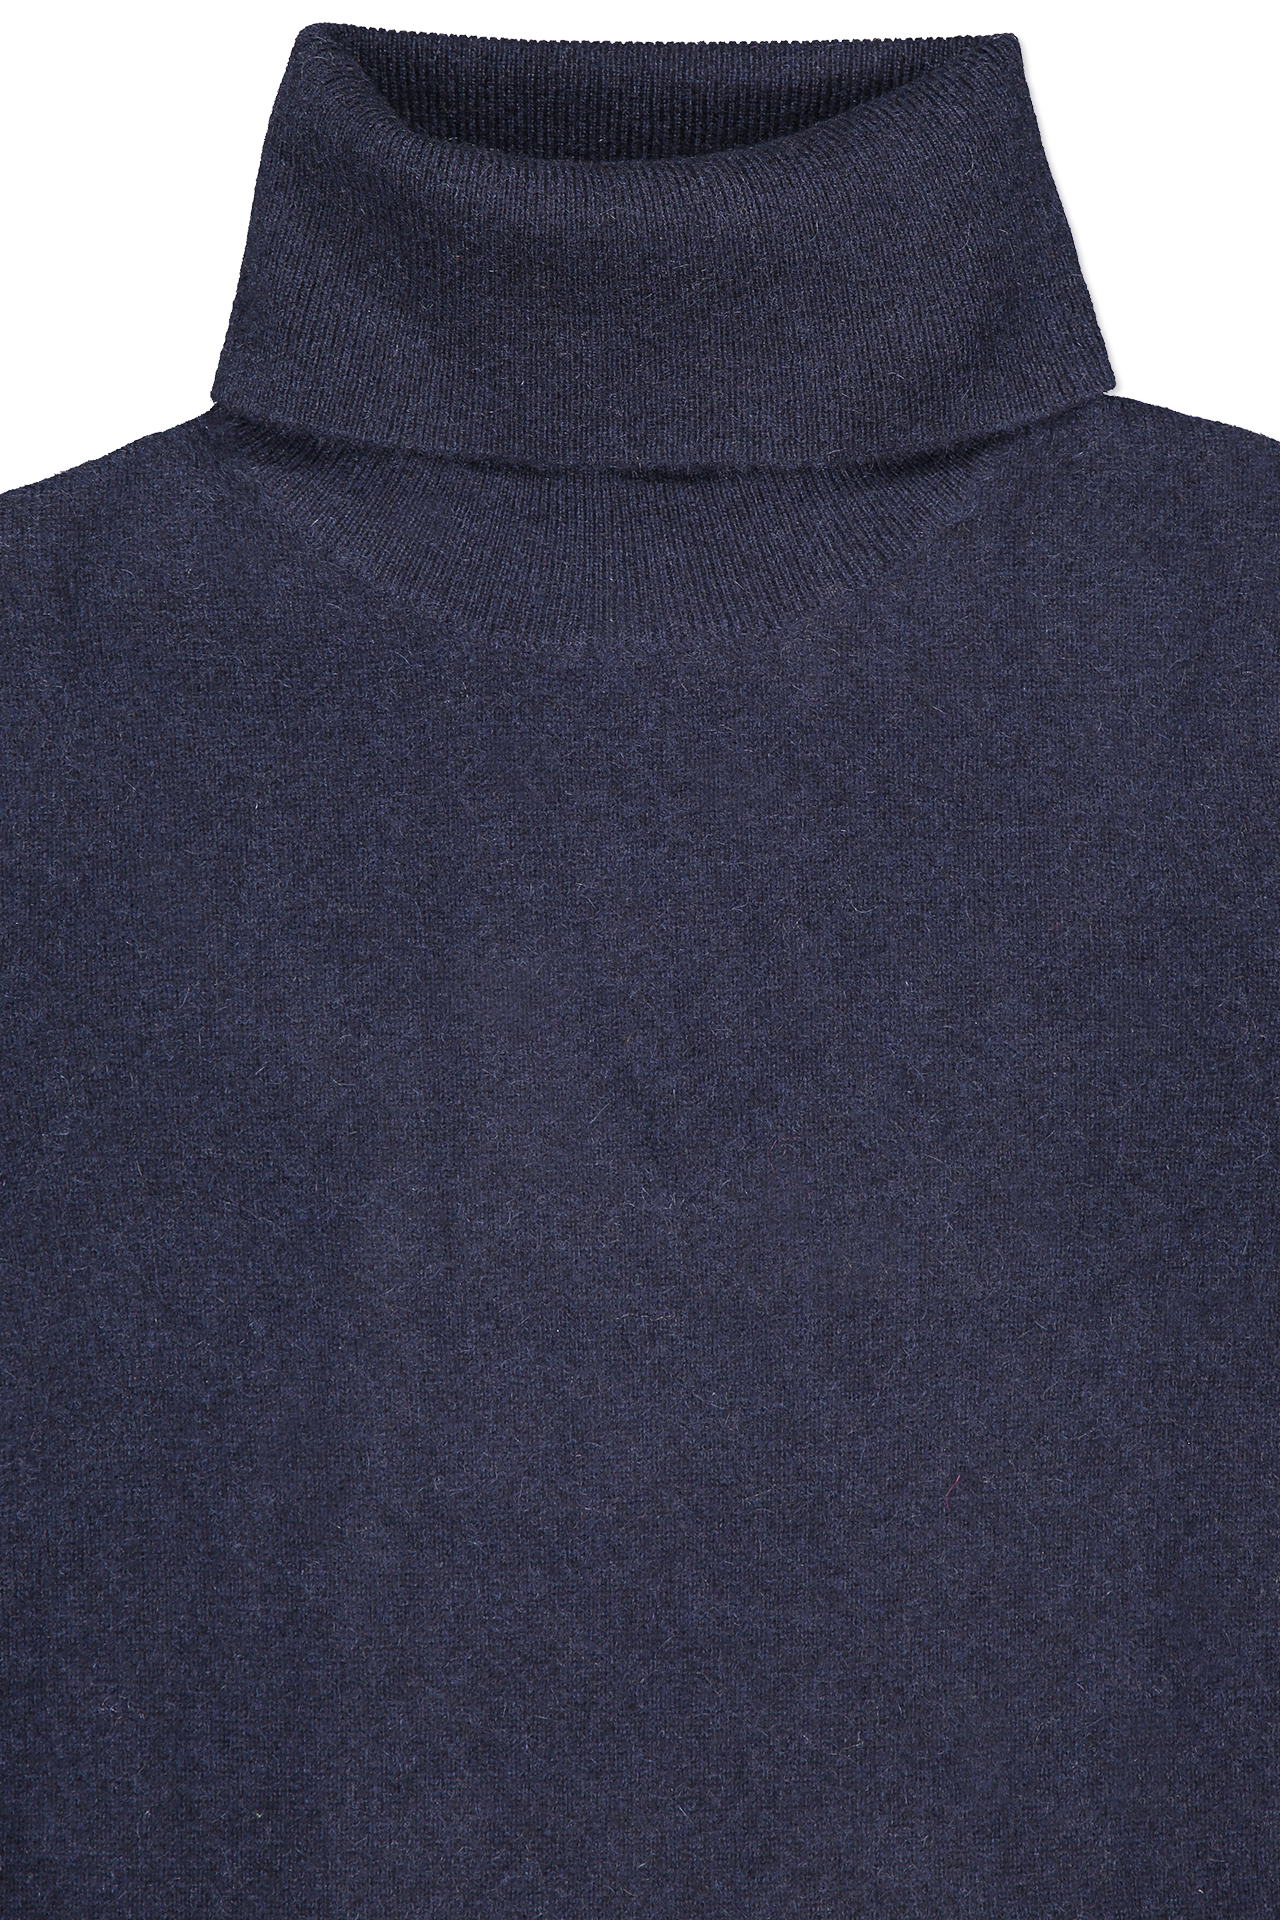 Front collar detail image of White & Warren Essential Turtleneck Sweater Deep Navy